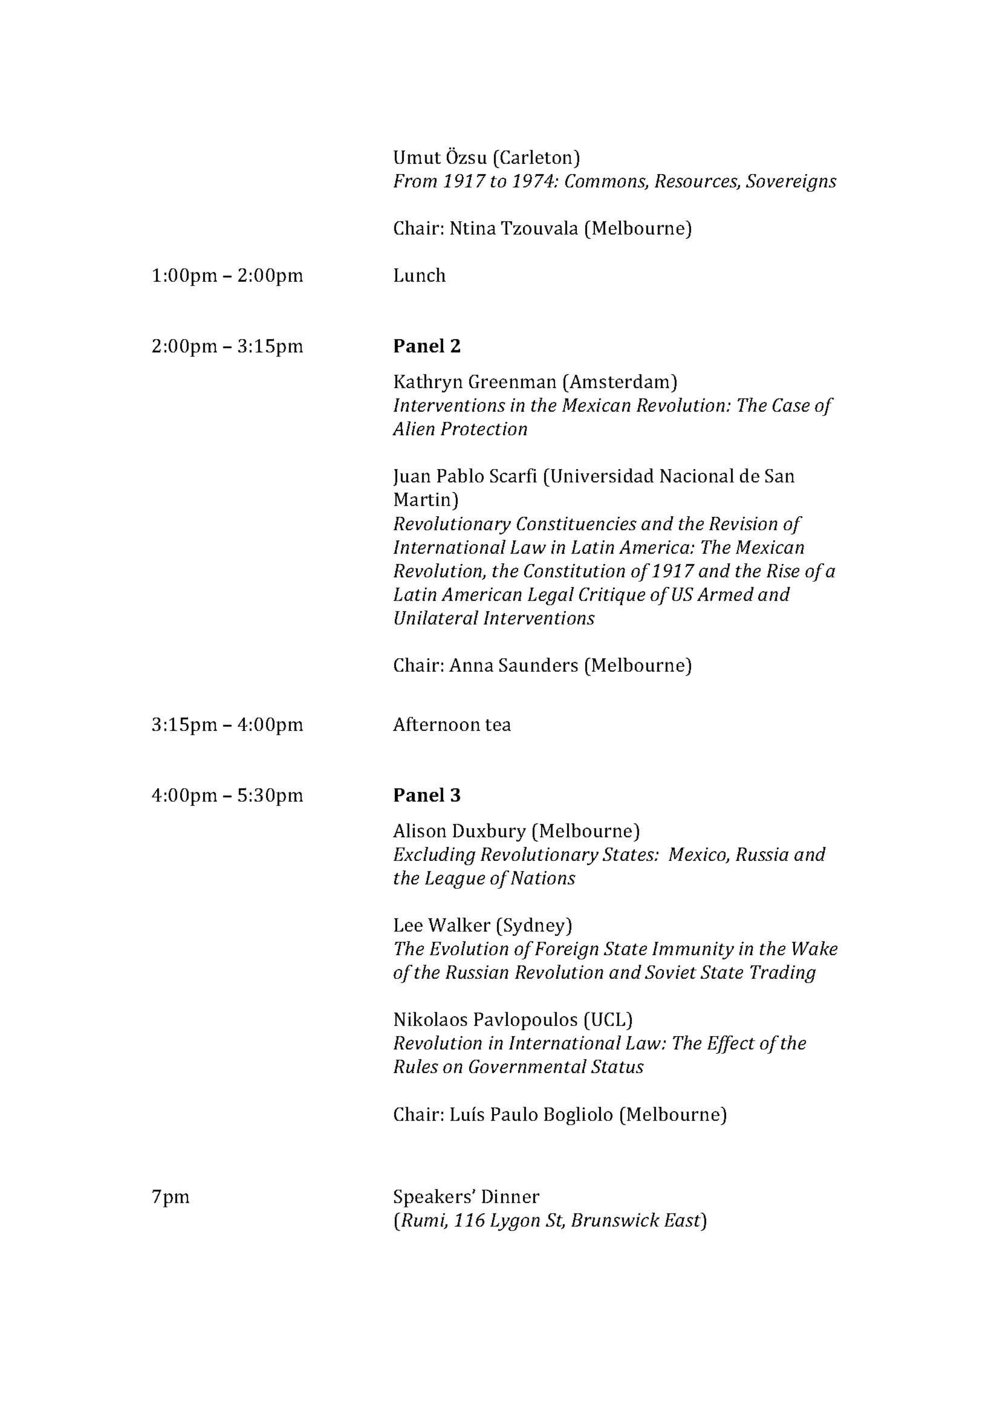 Revolutions conference - final final programme_Page_2.jpg